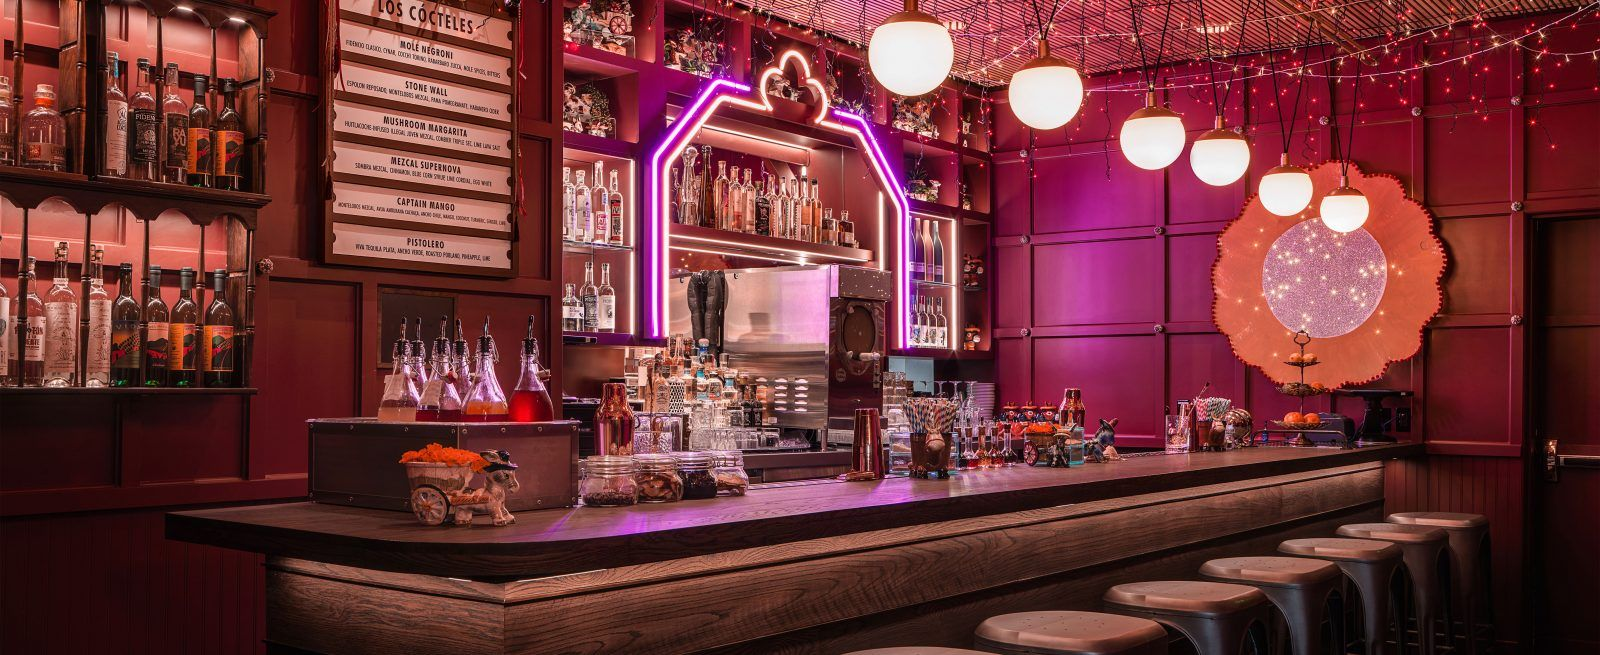 Tripleseat Teams With Alamo Drafthouse Tequila Bar Las Vegas Luxury Hotels Cool Bars